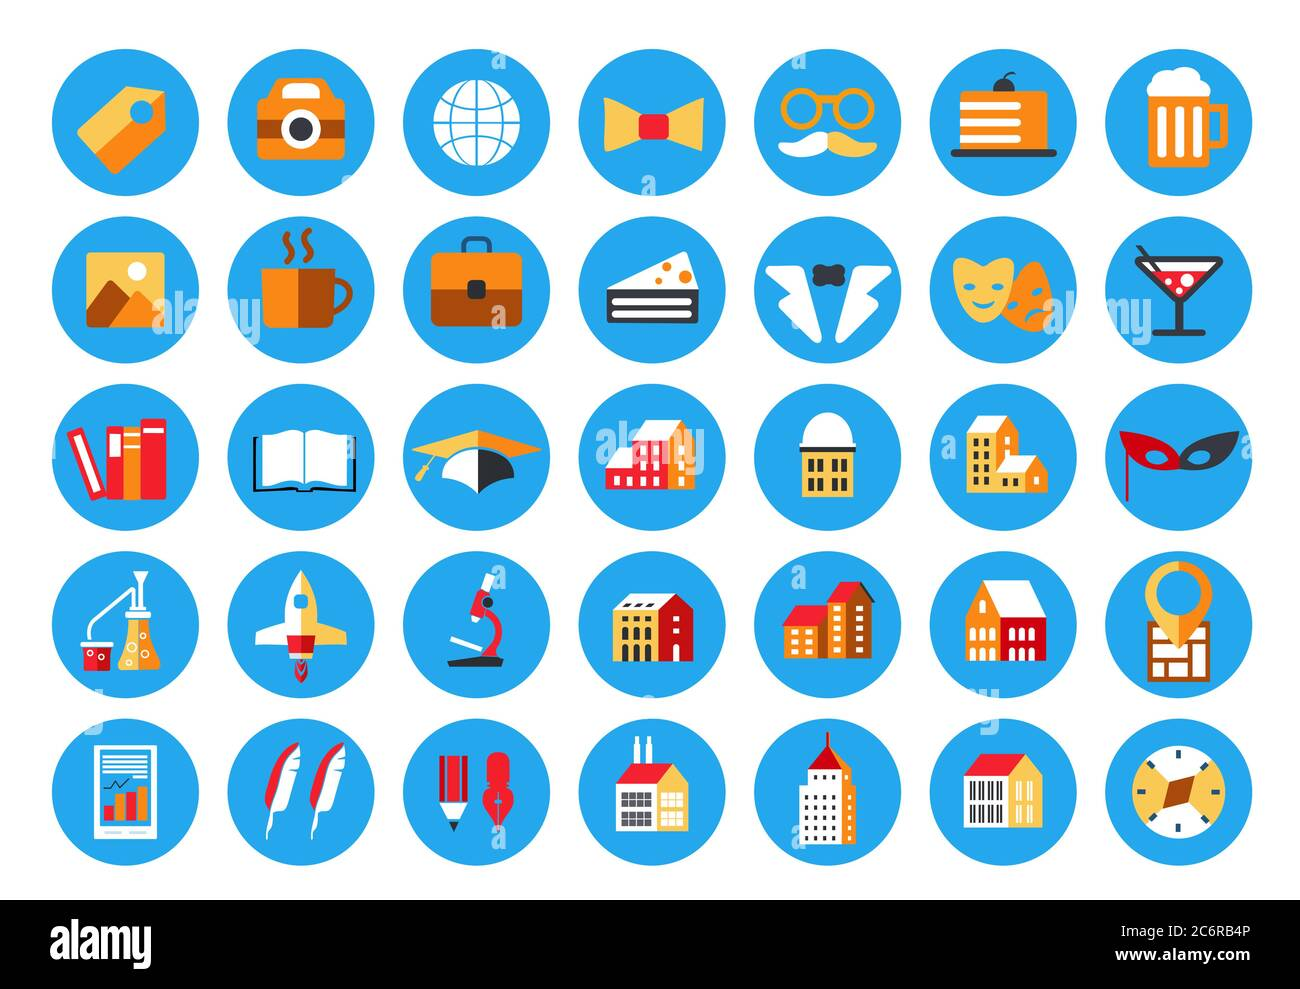 highlights instagram high resolution stock photography and images alamy https www alamy com instagram highlights stories covers icons image365619318 html